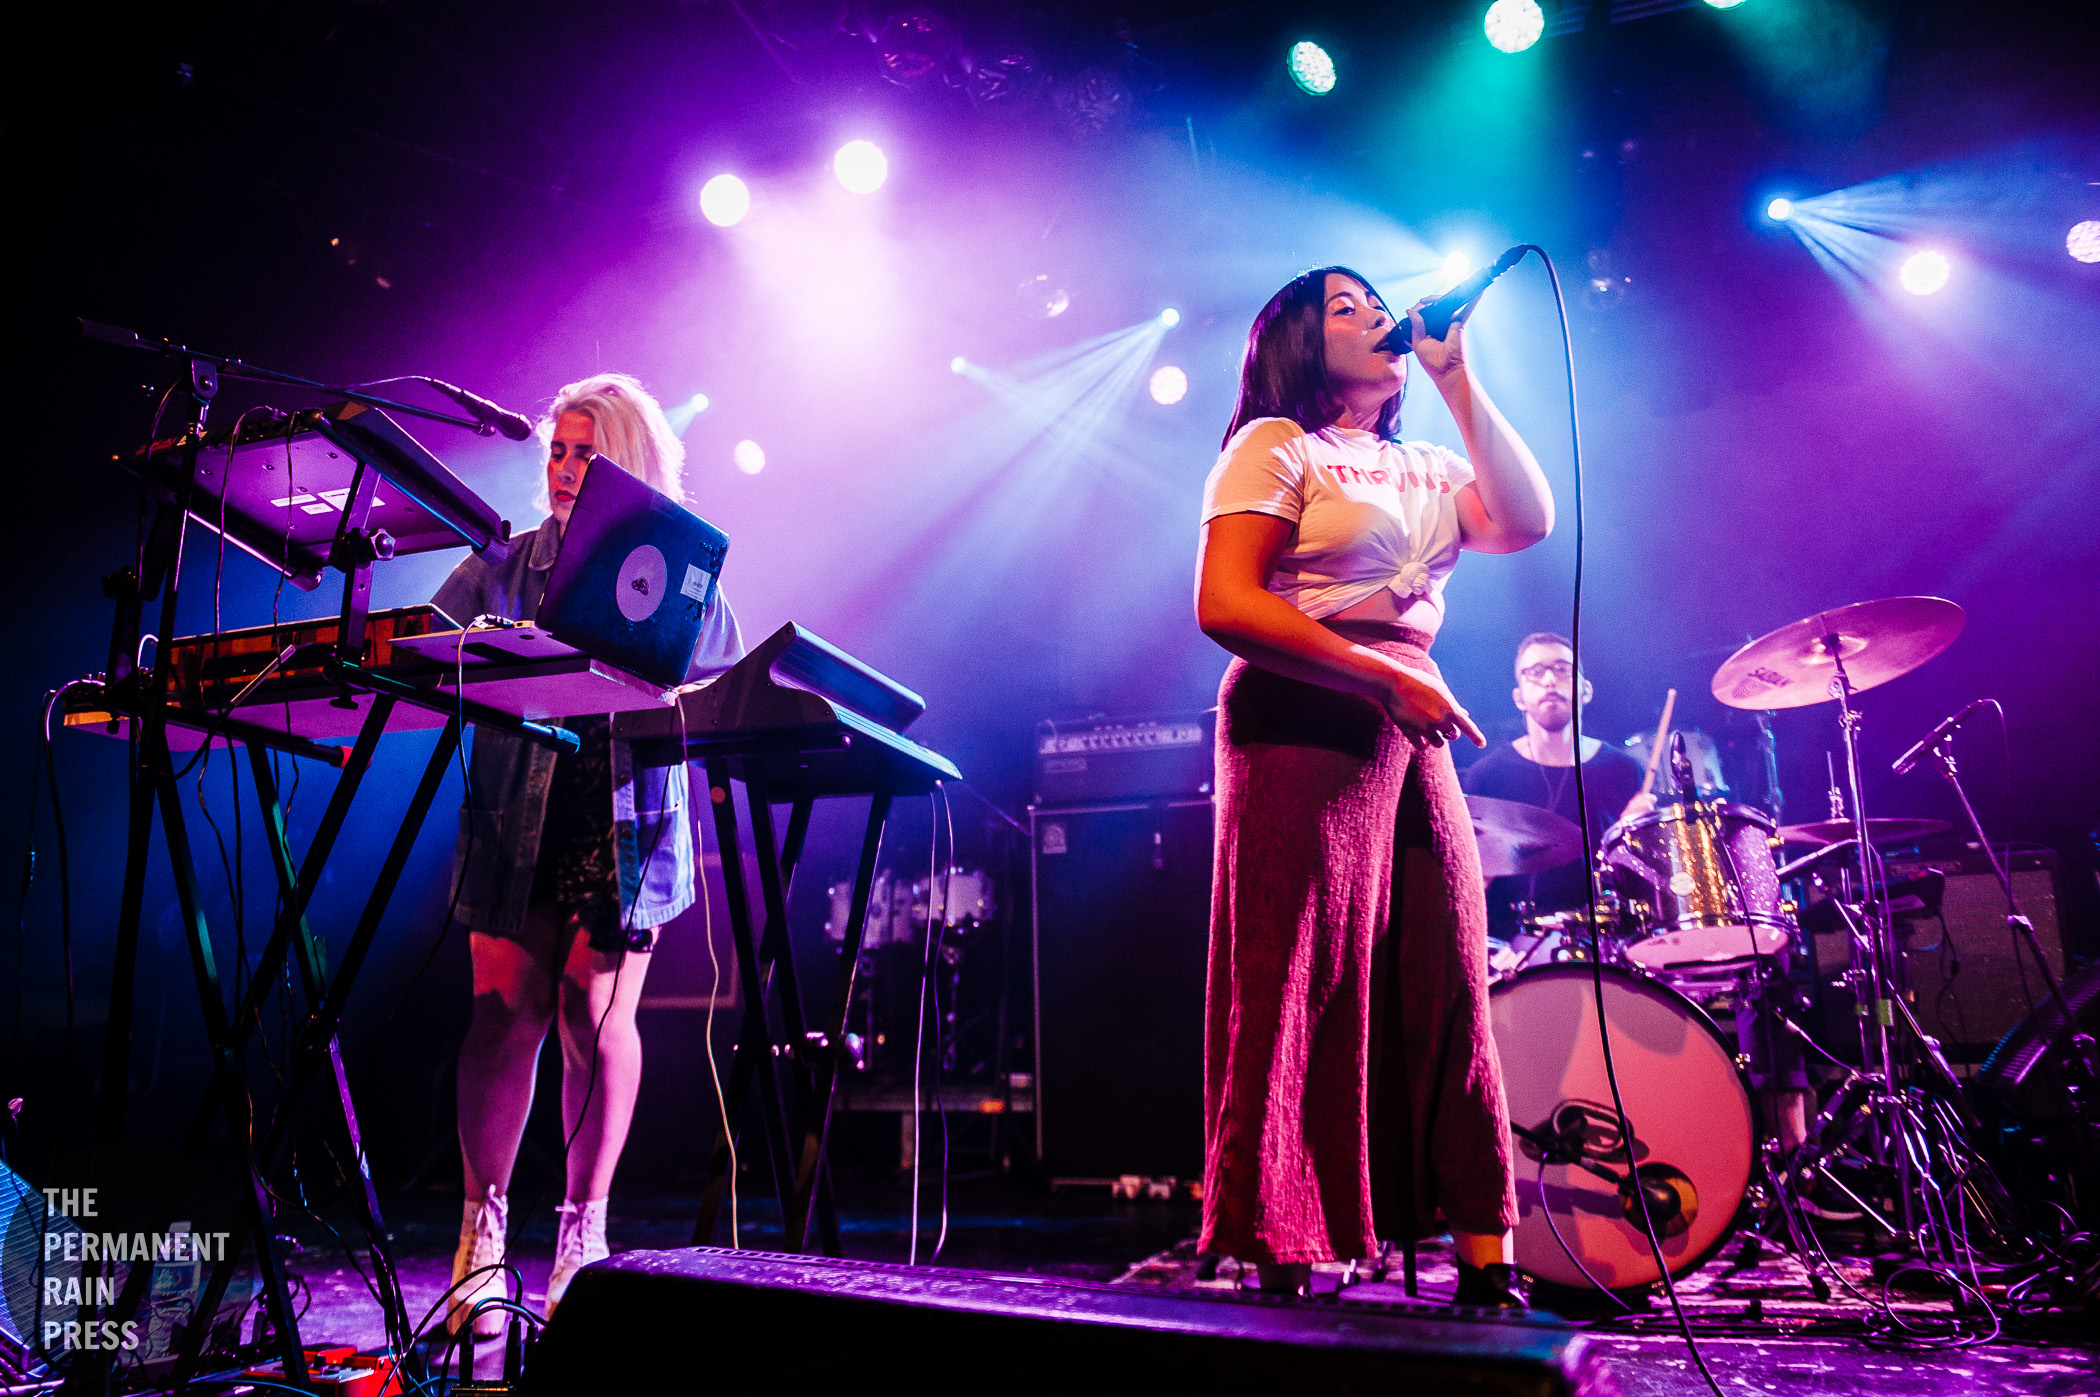 2_The_Belle_Game-Commodore_Ballroom-Timothy_Nguyen-20171020 (11 of 14).jpg